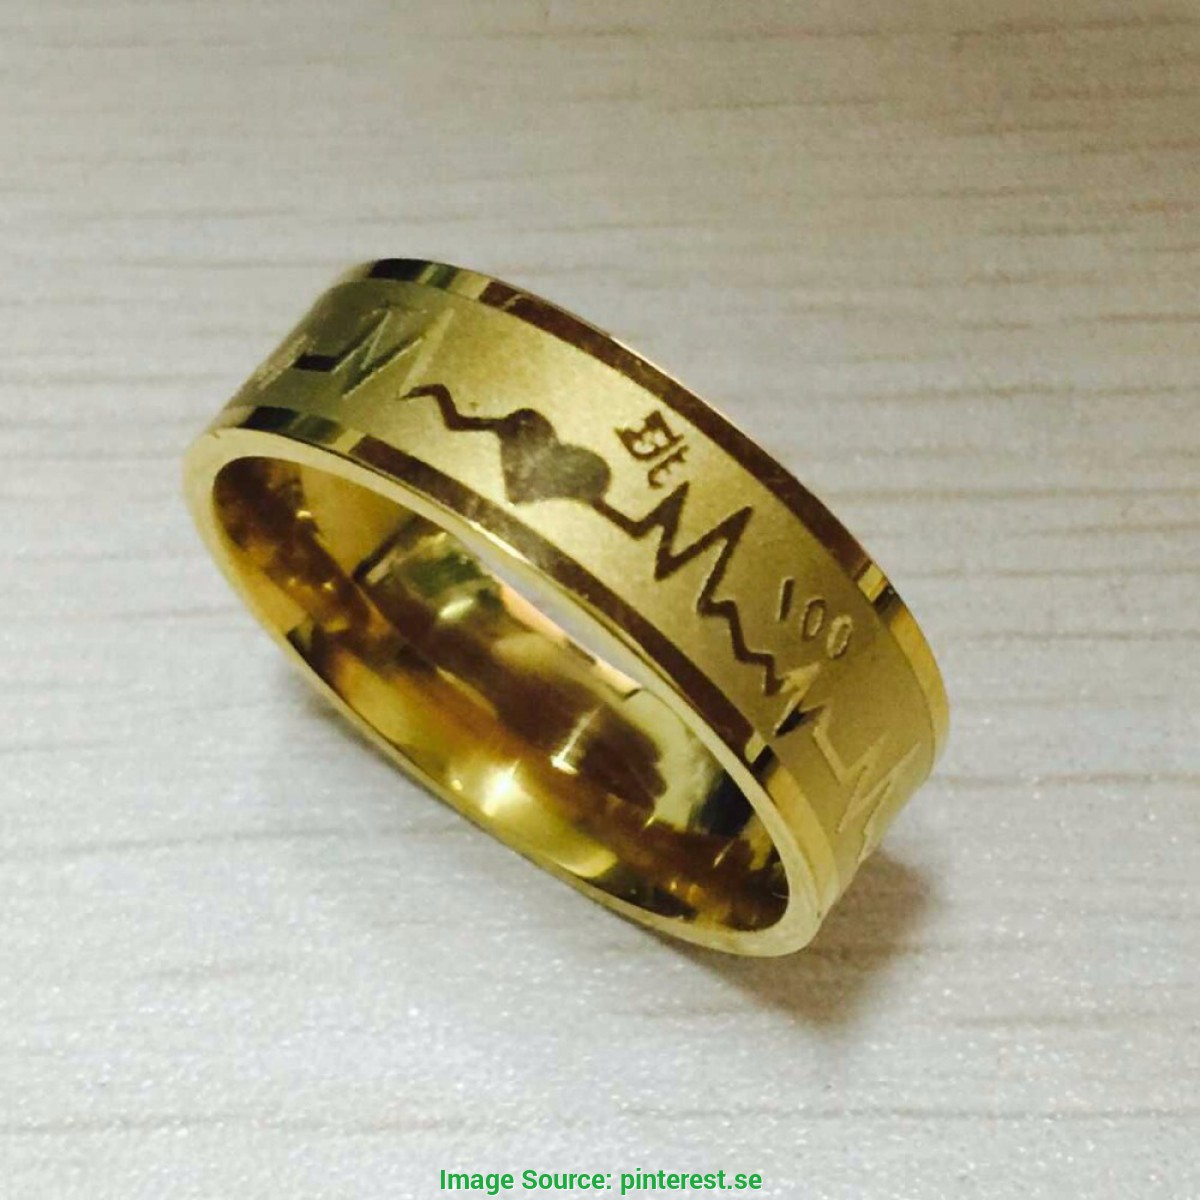 De Luxo Aliança de Ouro Aliexpress Find More Rings Information About Fashion 8Mm Falling In Lov